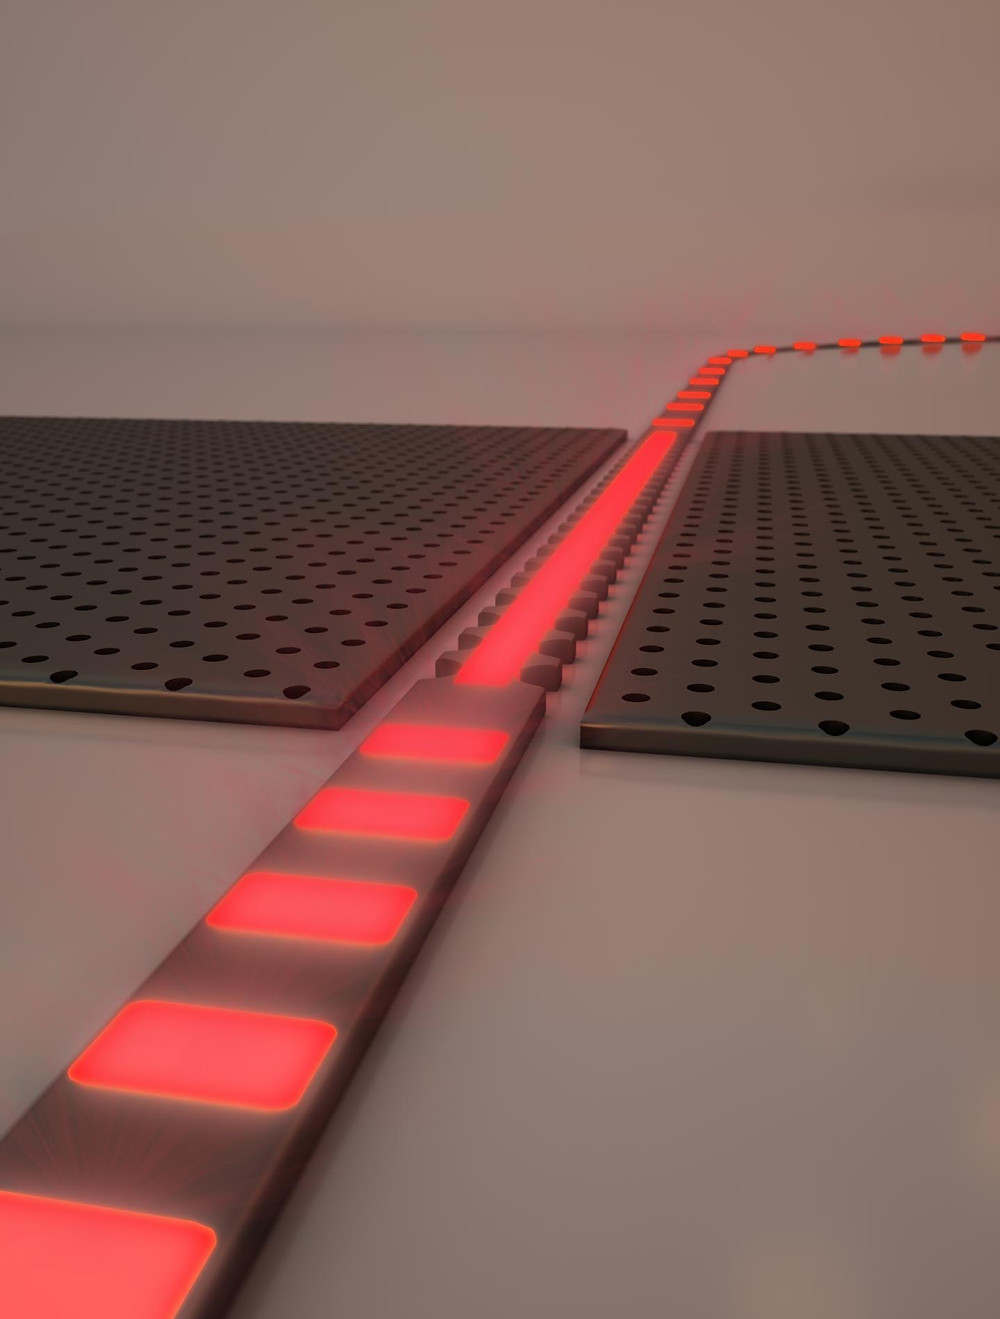 A zero-index waveguide compatible with current silicon photonic technologies. @ Second Bay Studios/Harvard SEAS